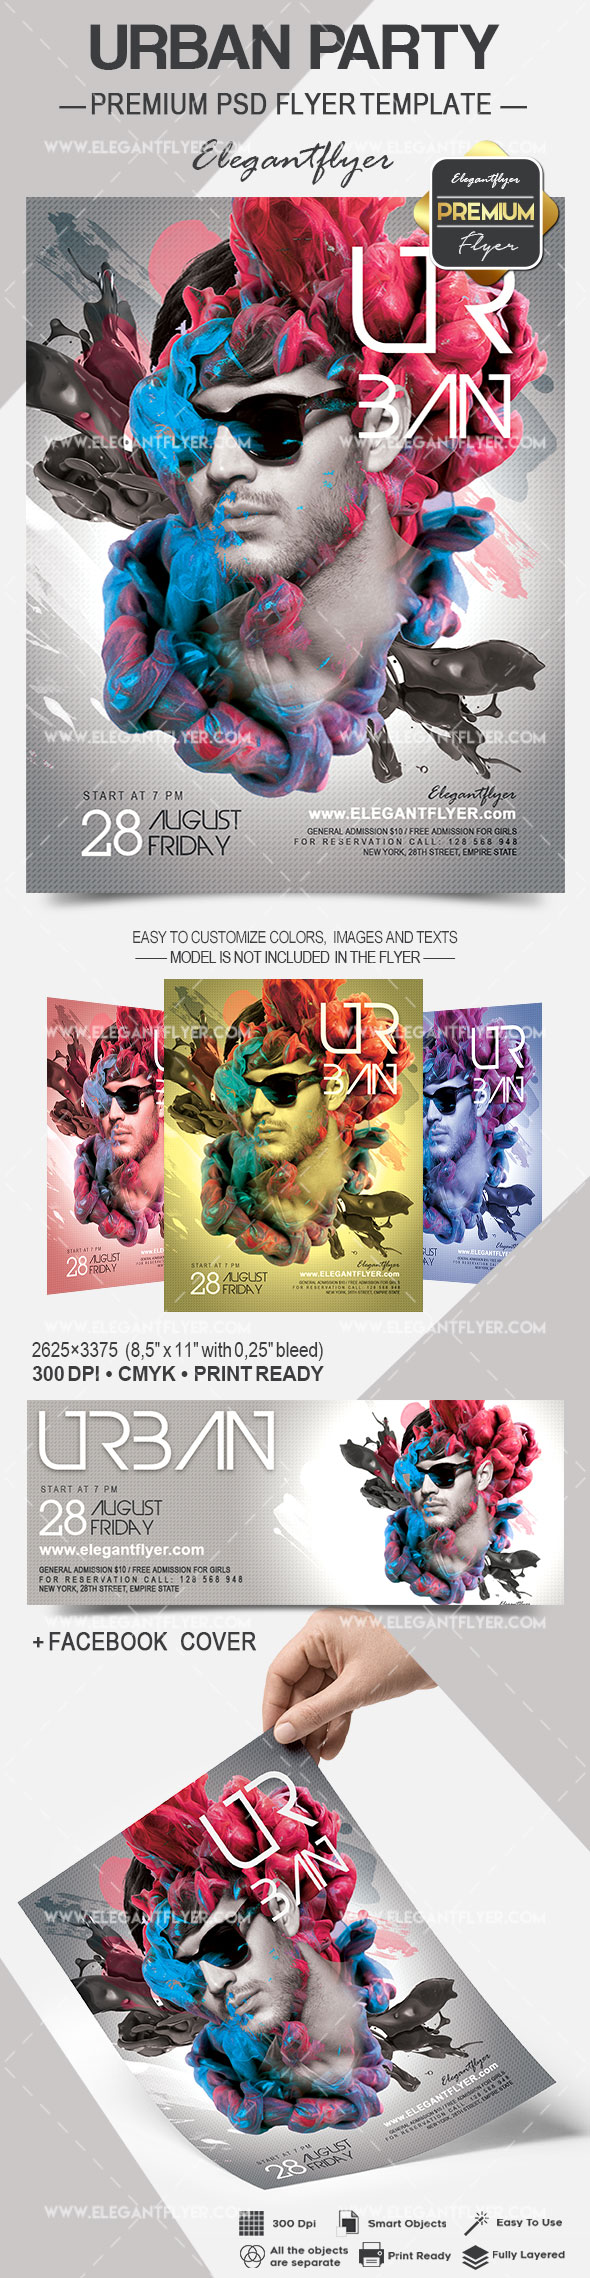 Urban Dance Music Flyer PSD Template